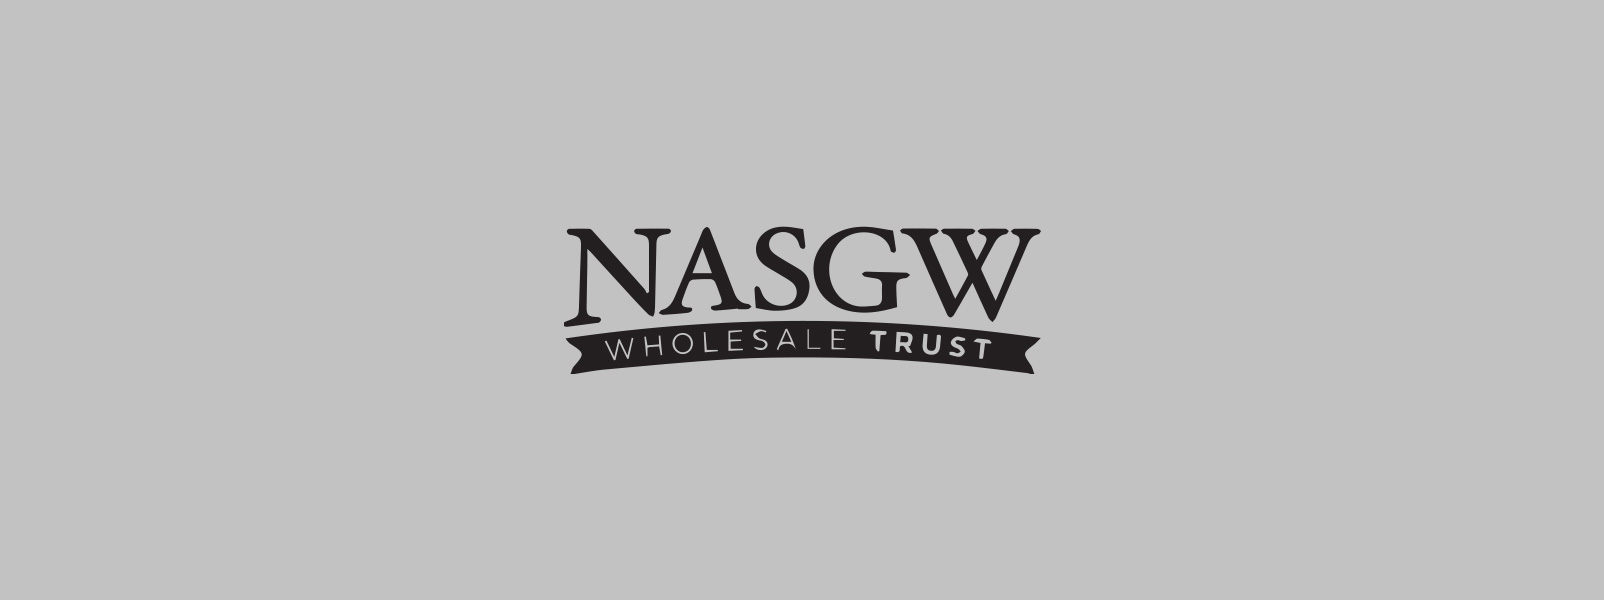 NASGW RENEWS TIER 3 SPONSORSHIP OF ASA